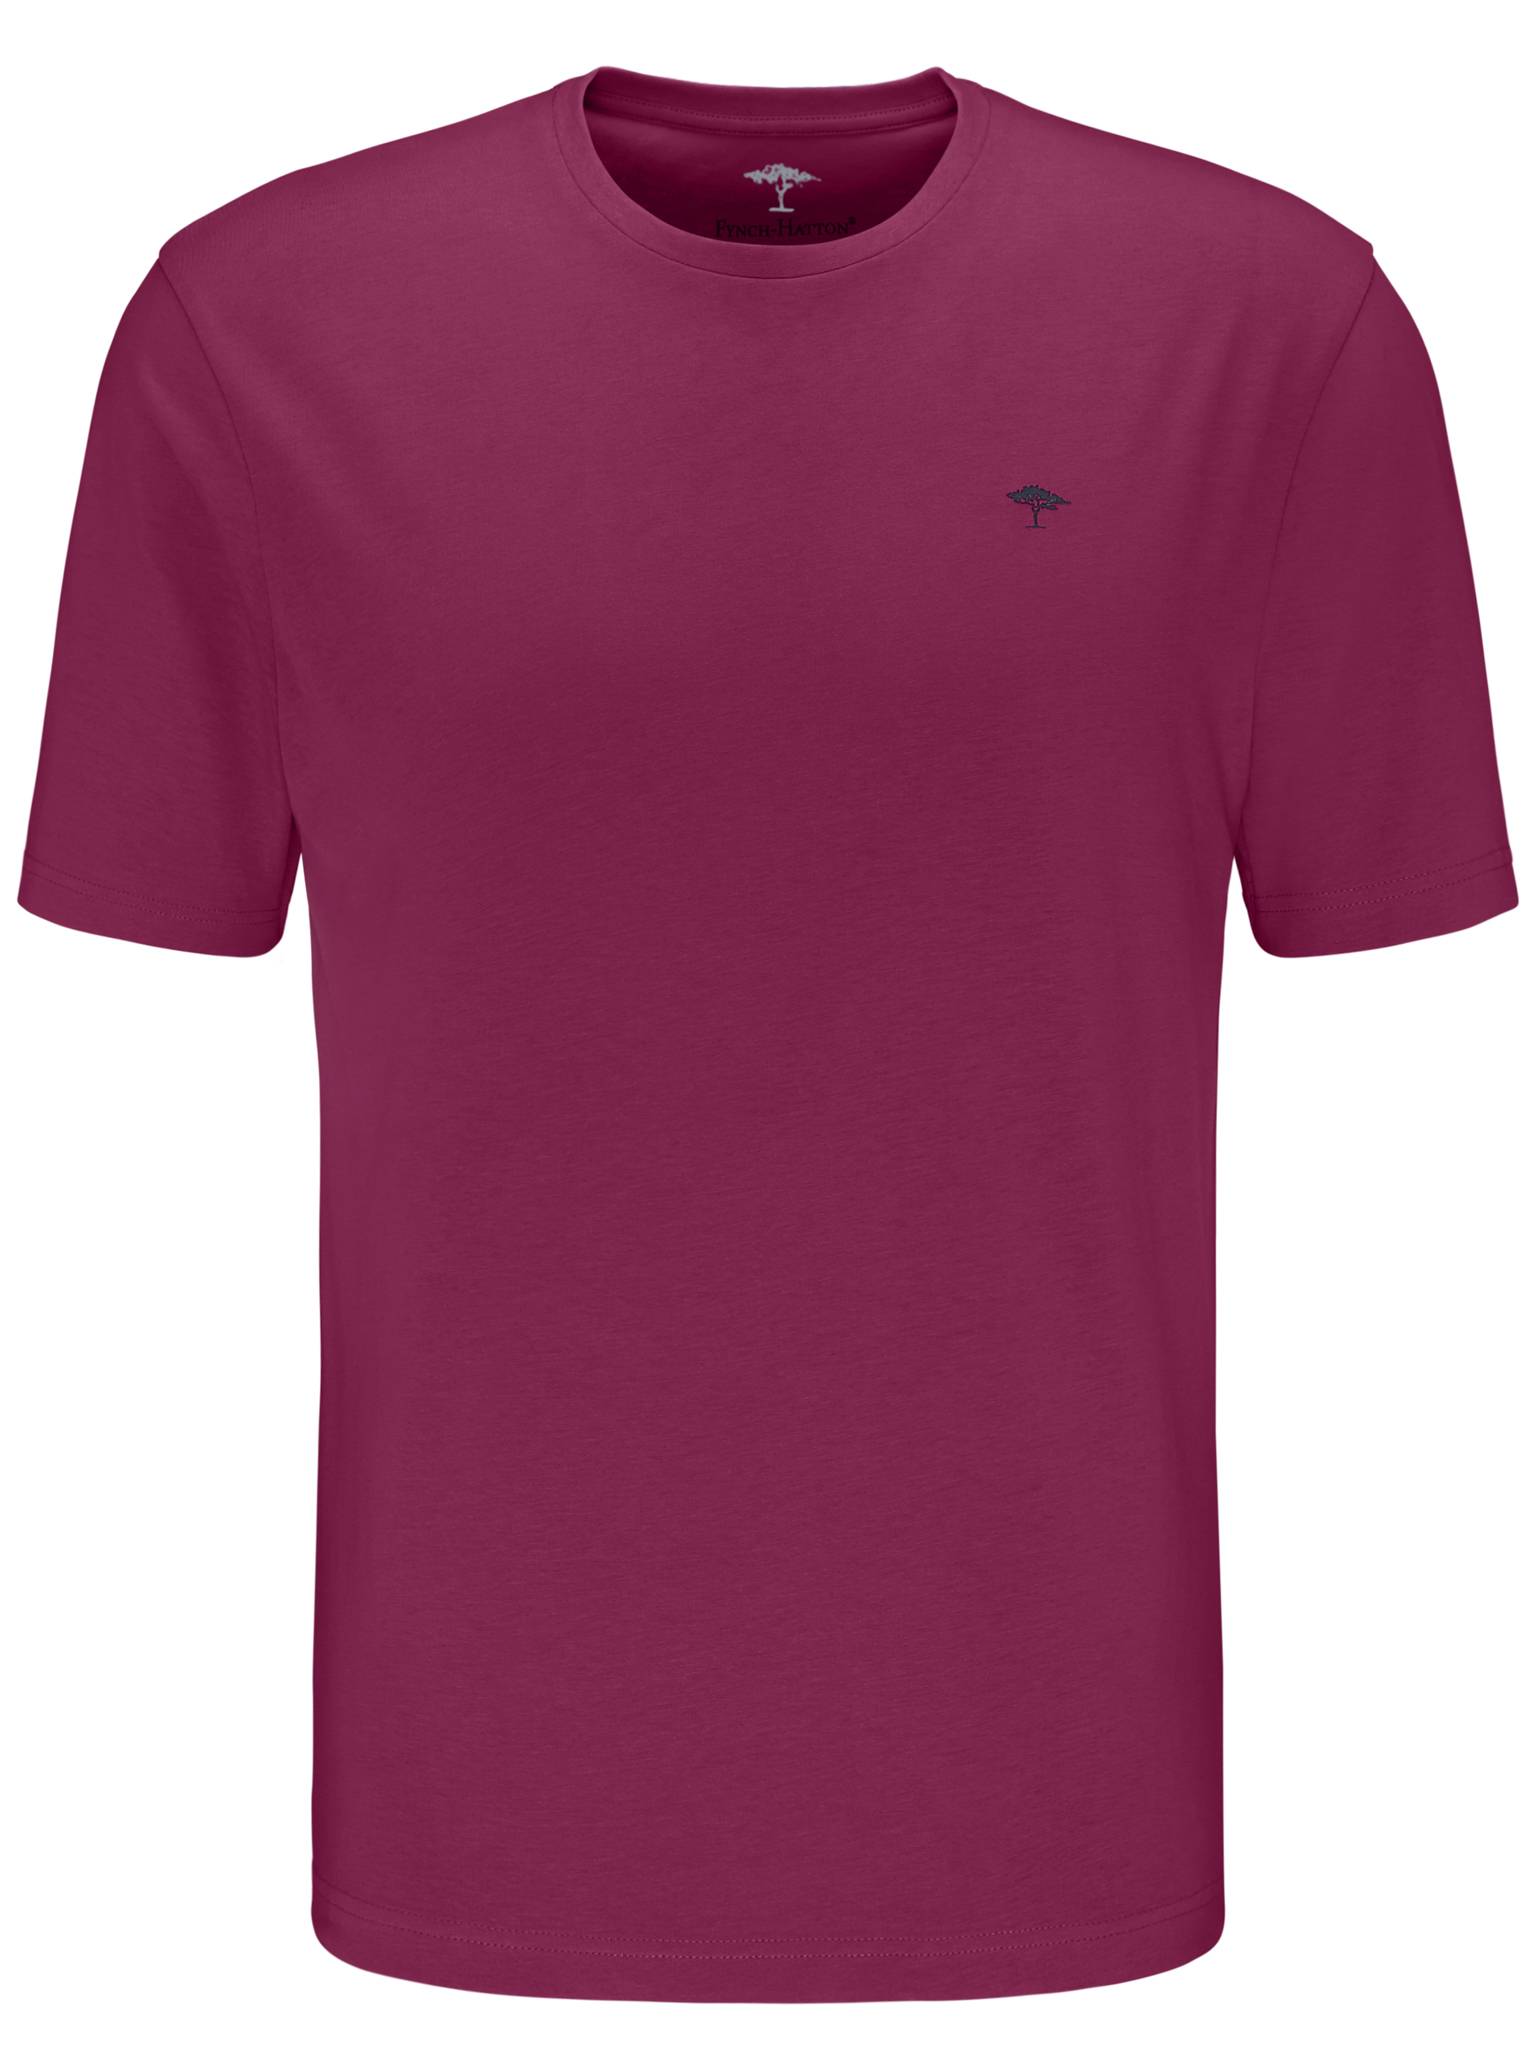 Fynch Hatton cotton tee shirt in purple